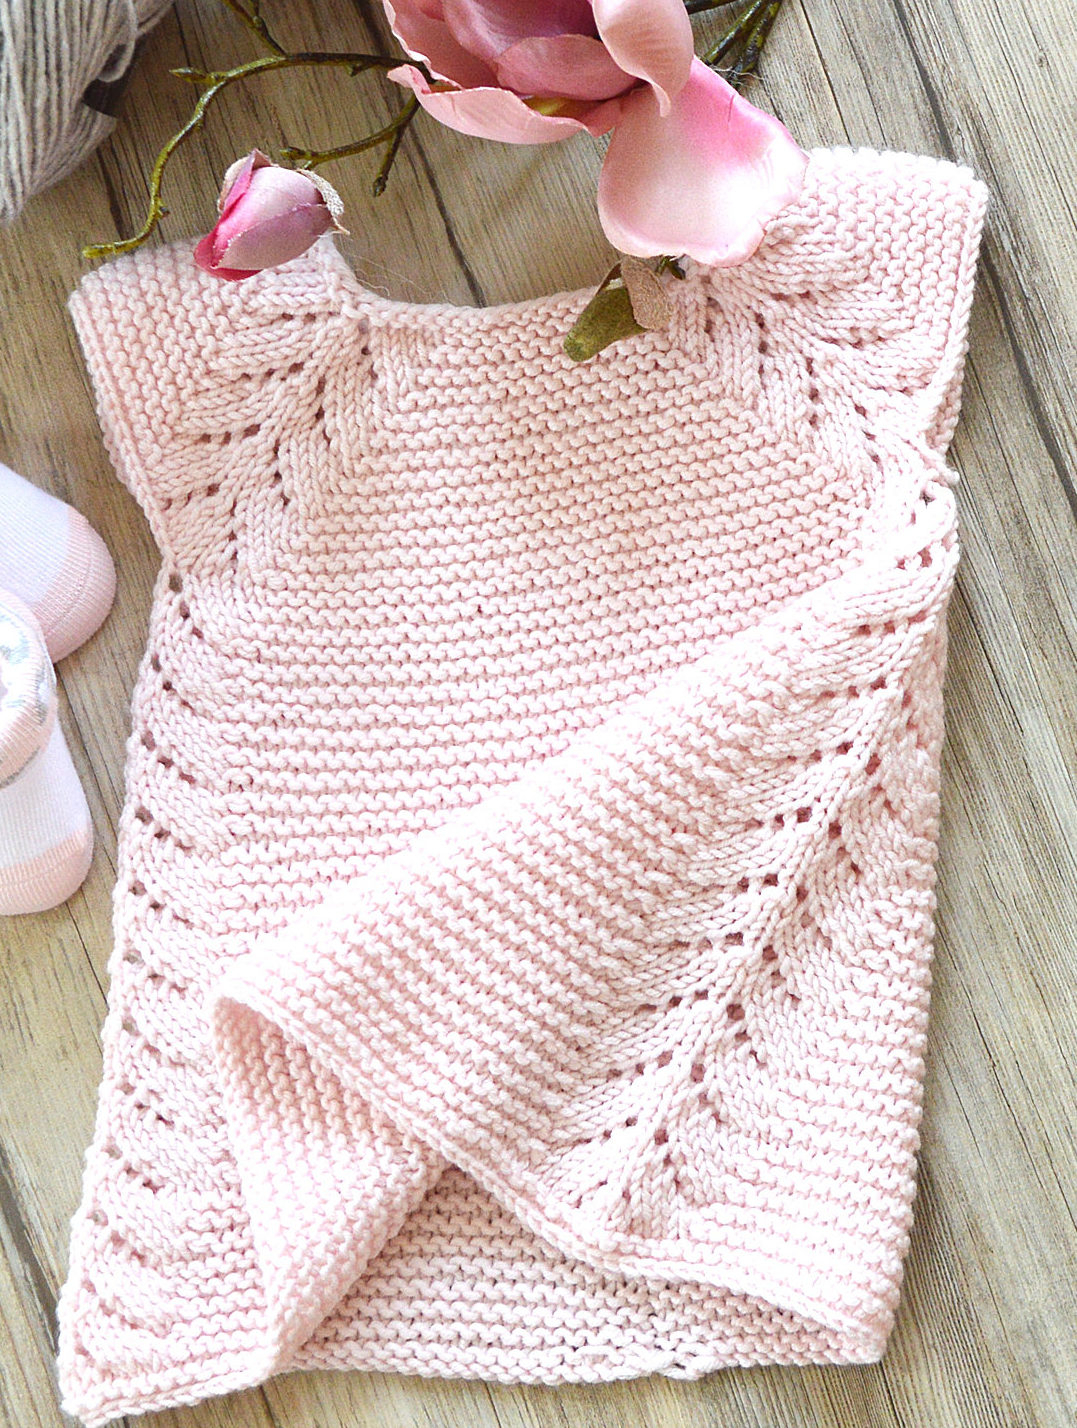 Free Baby Knitting Patterns 8 Ply Dresses And Skirts For Babies And Children Knitting Patterns In